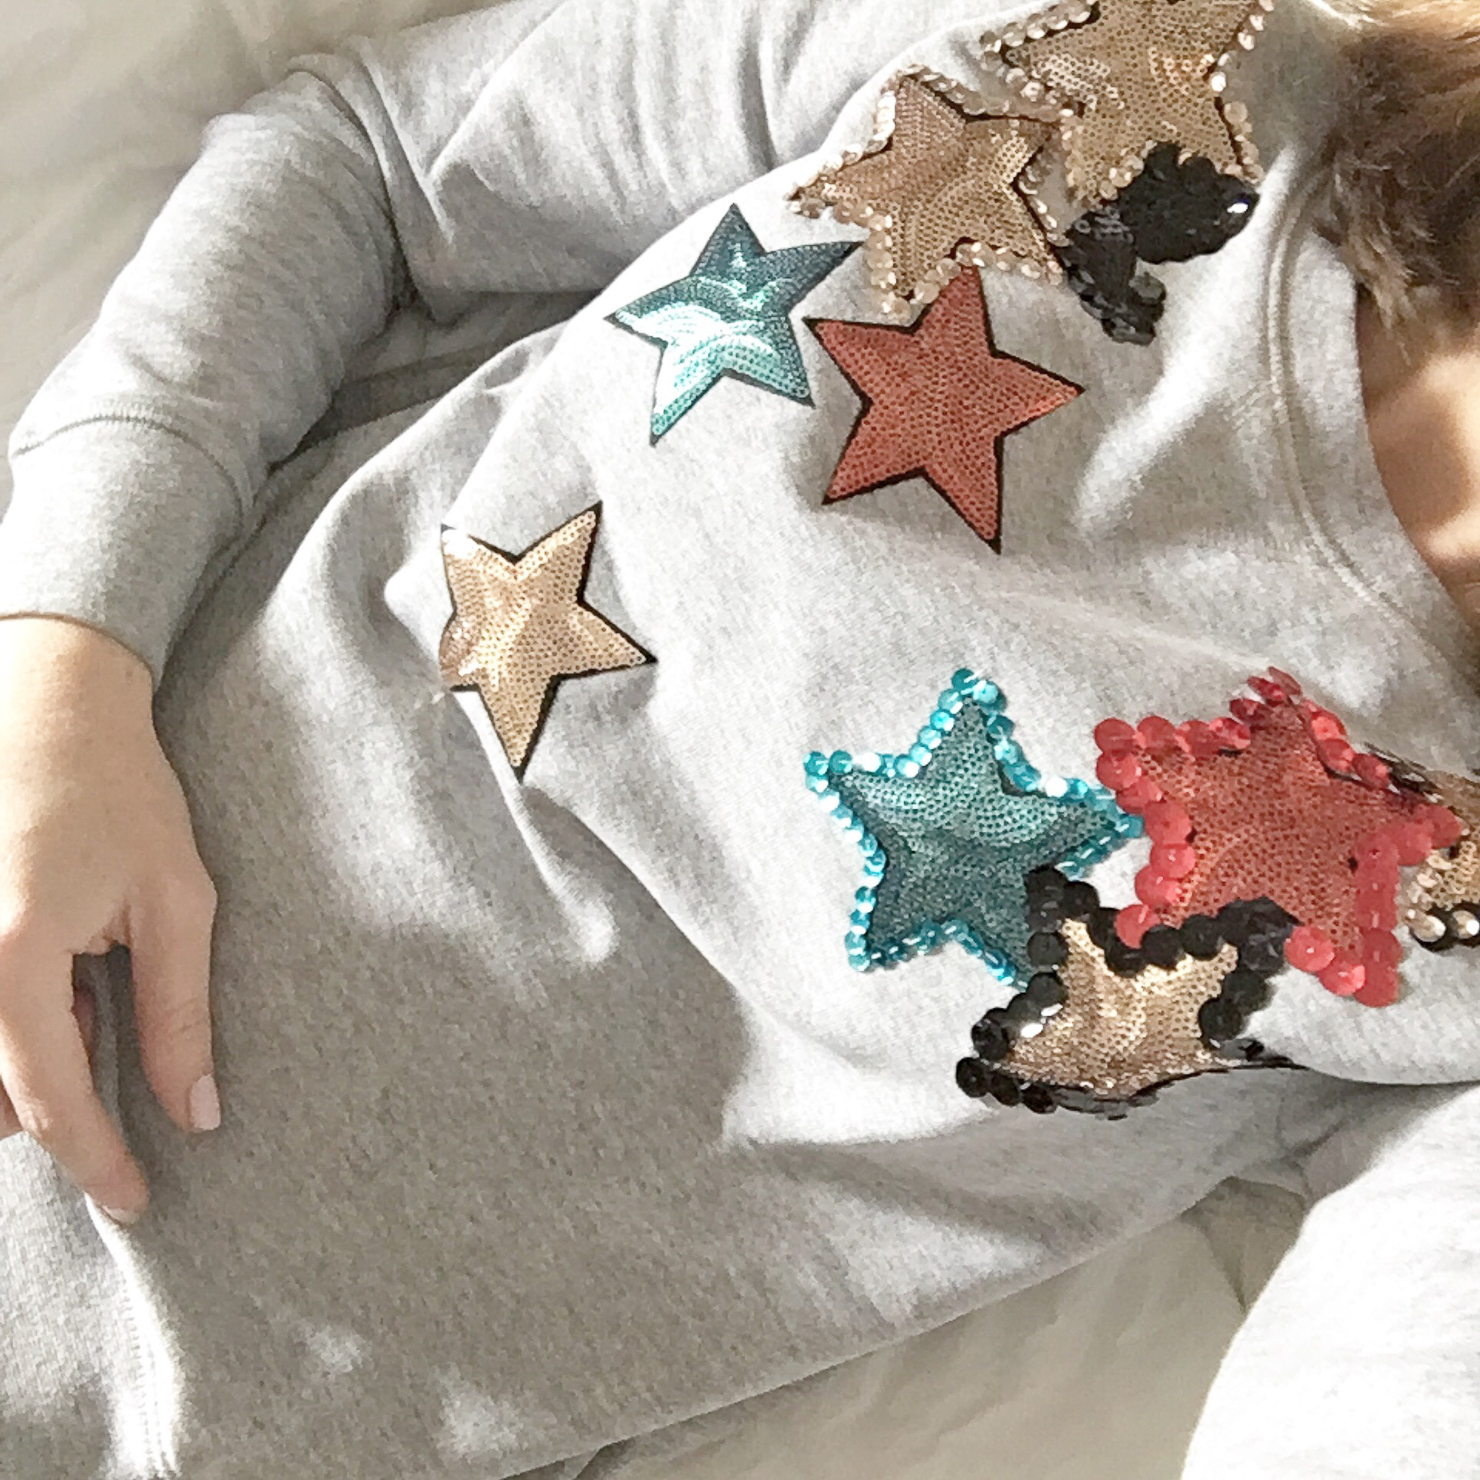 instagram-george-j-love-star-embellished-sweatershirt